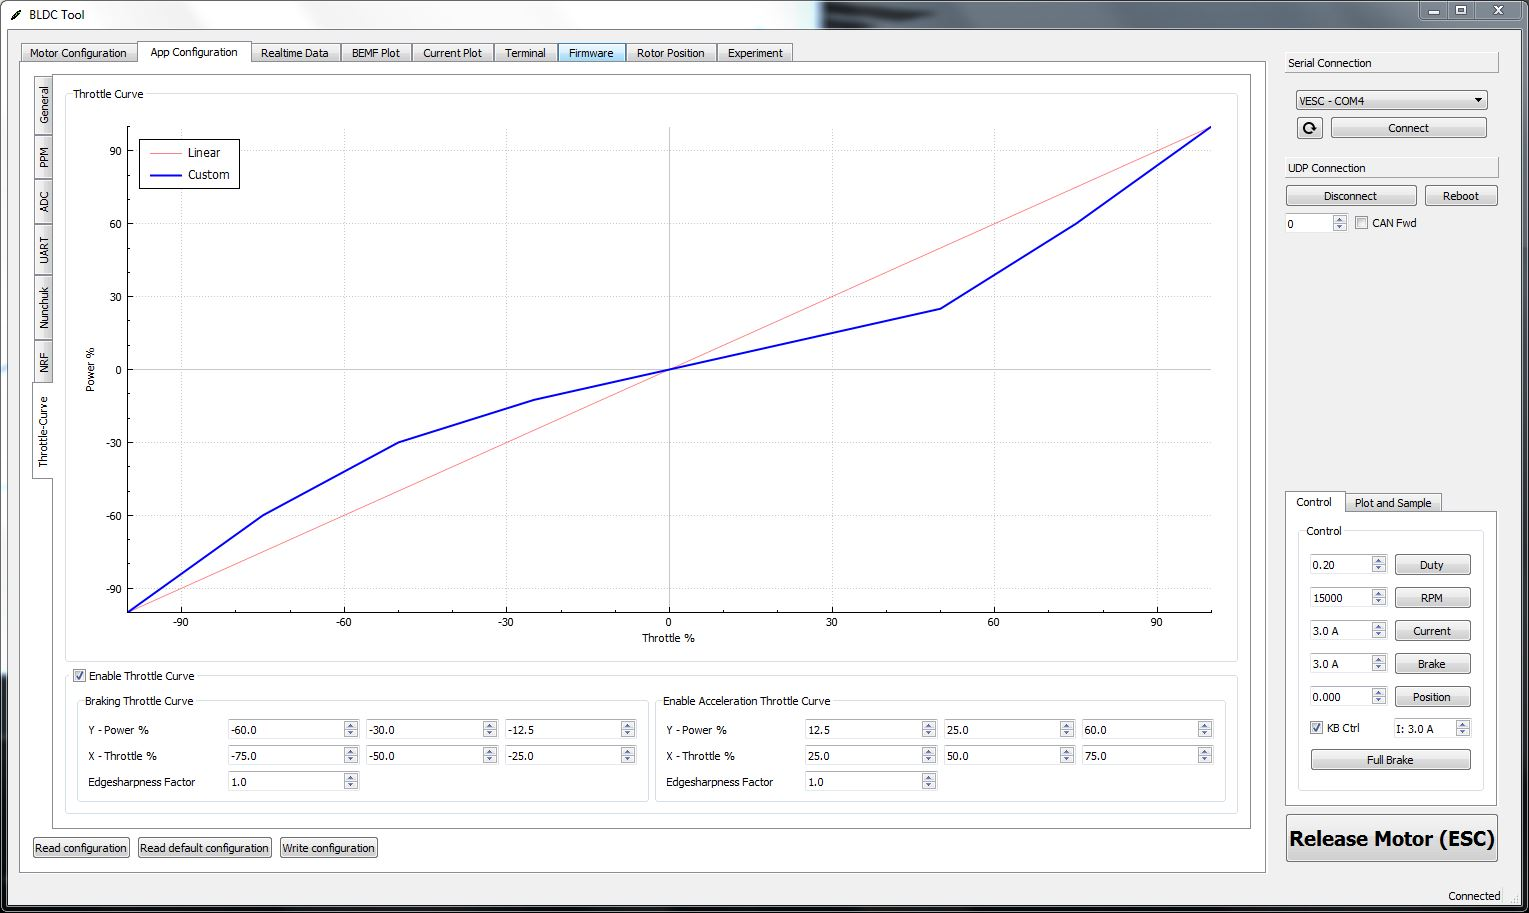 gear%20drive%2012s%20v1%20throttle%20curve